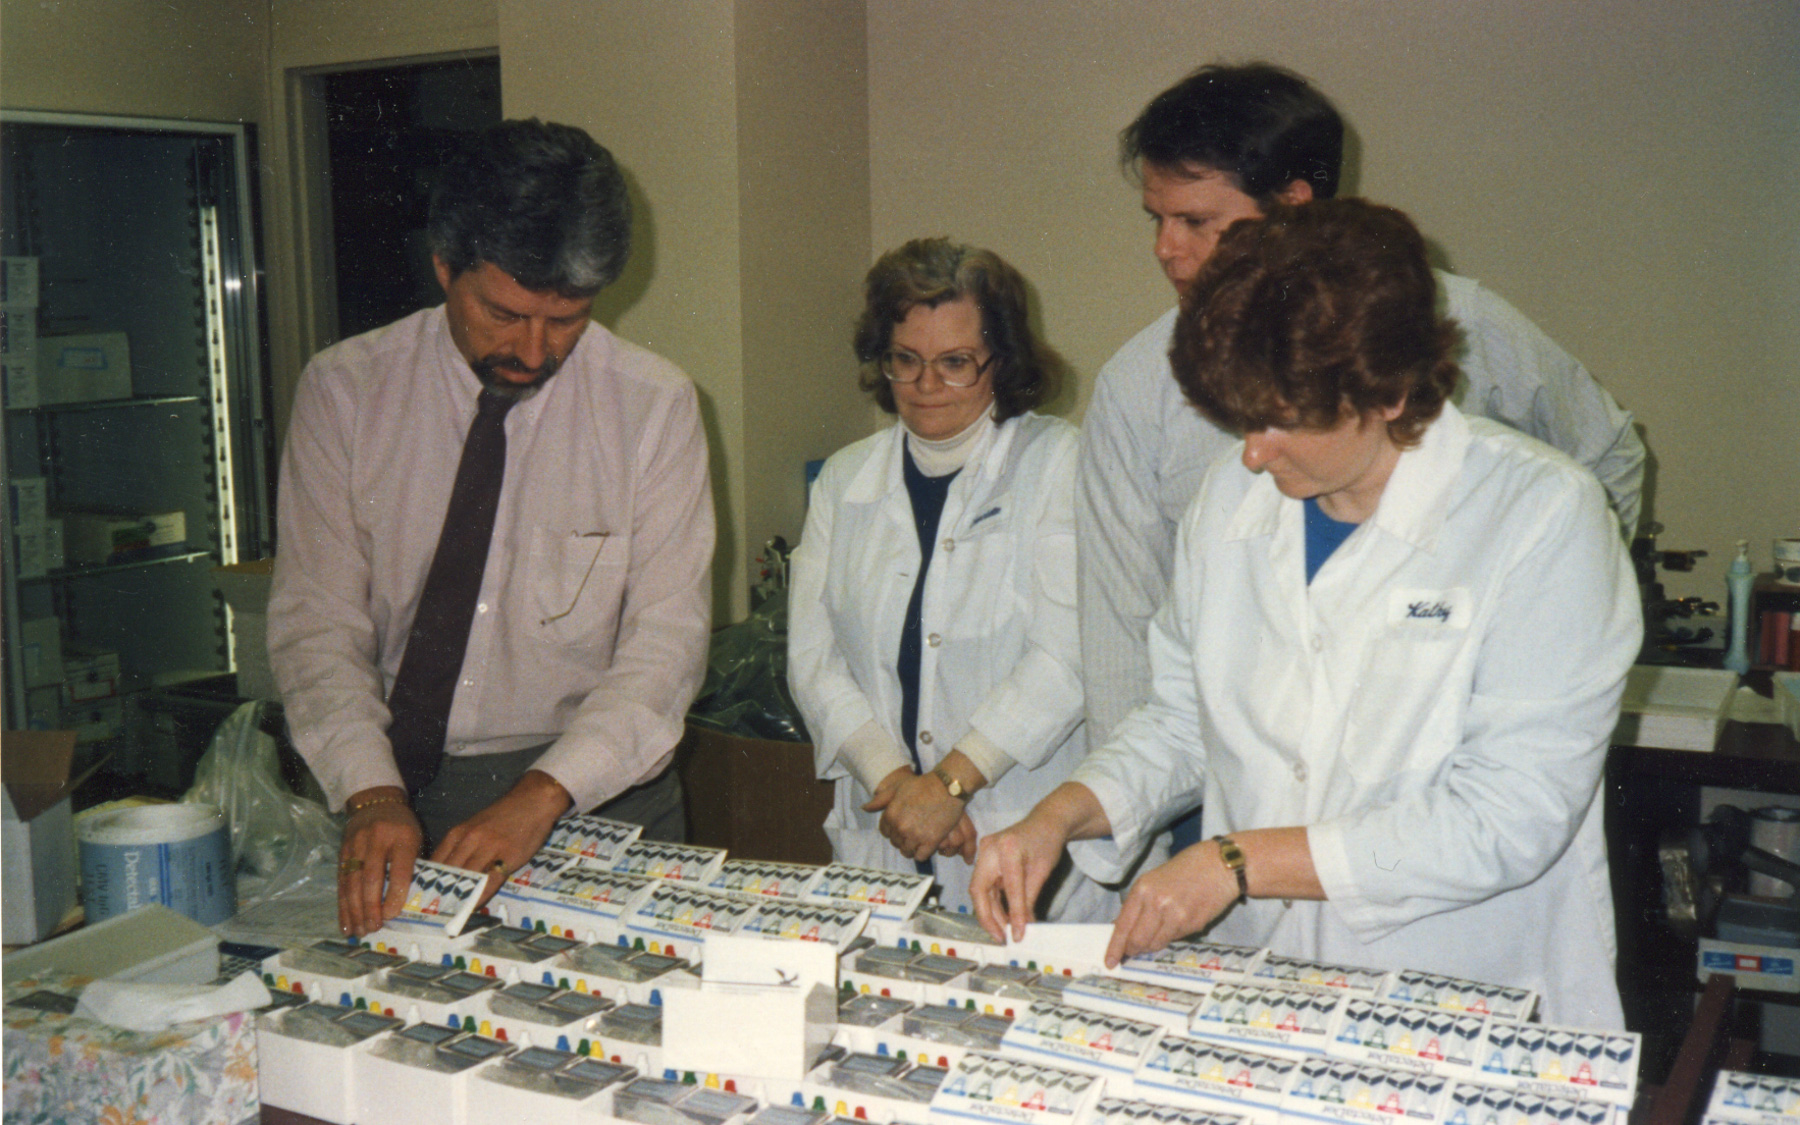 Dr. Wentz with his staff of scientists and researchers